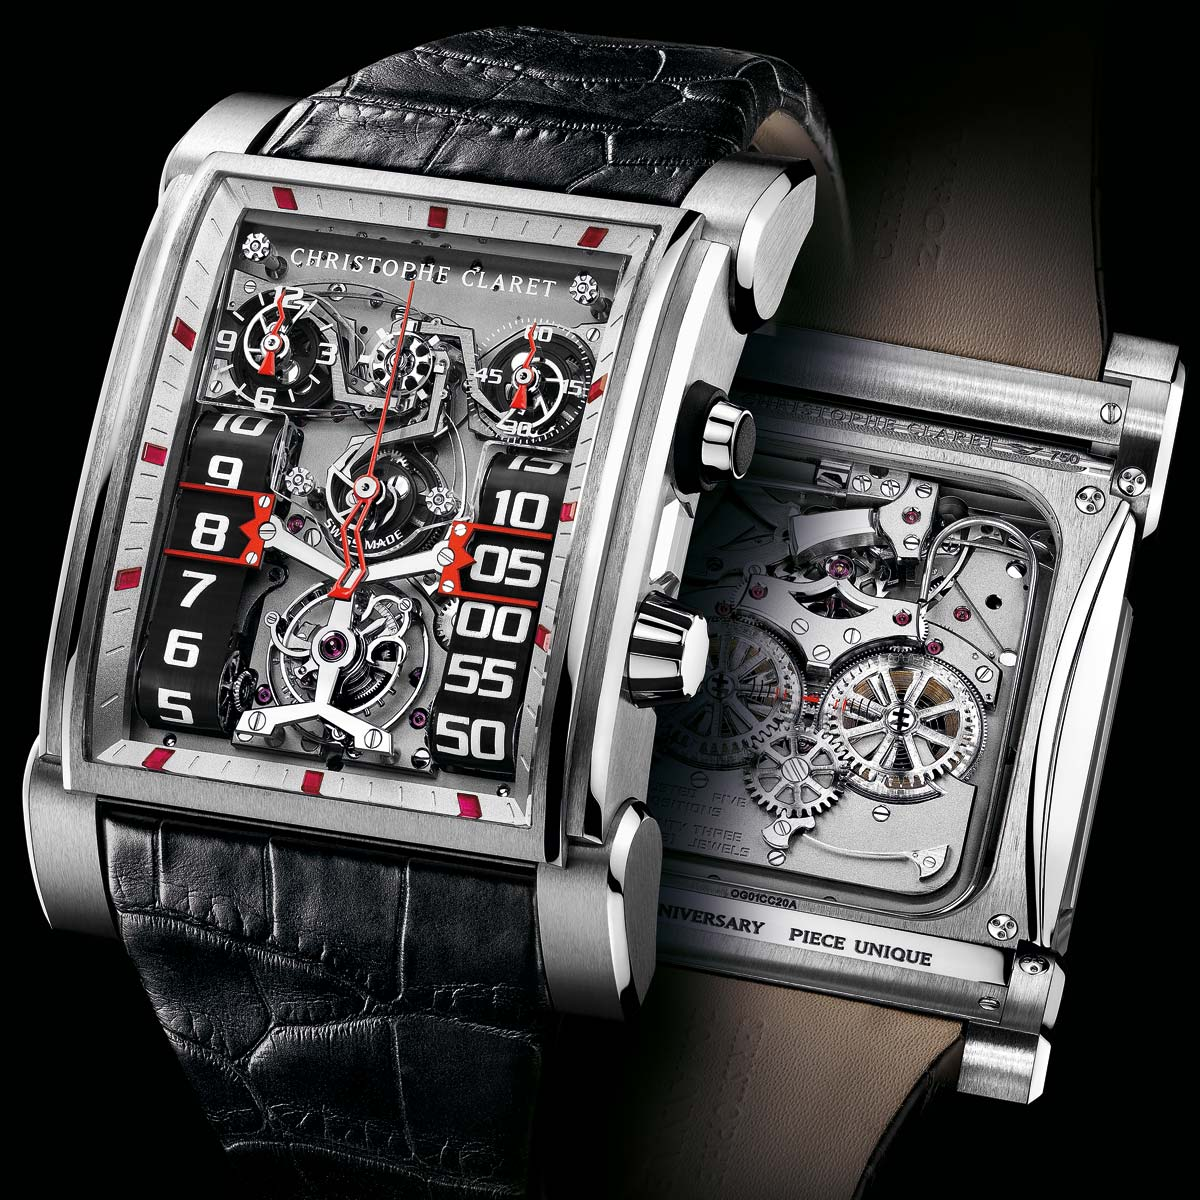 Christophe Claret watches 2018 for men